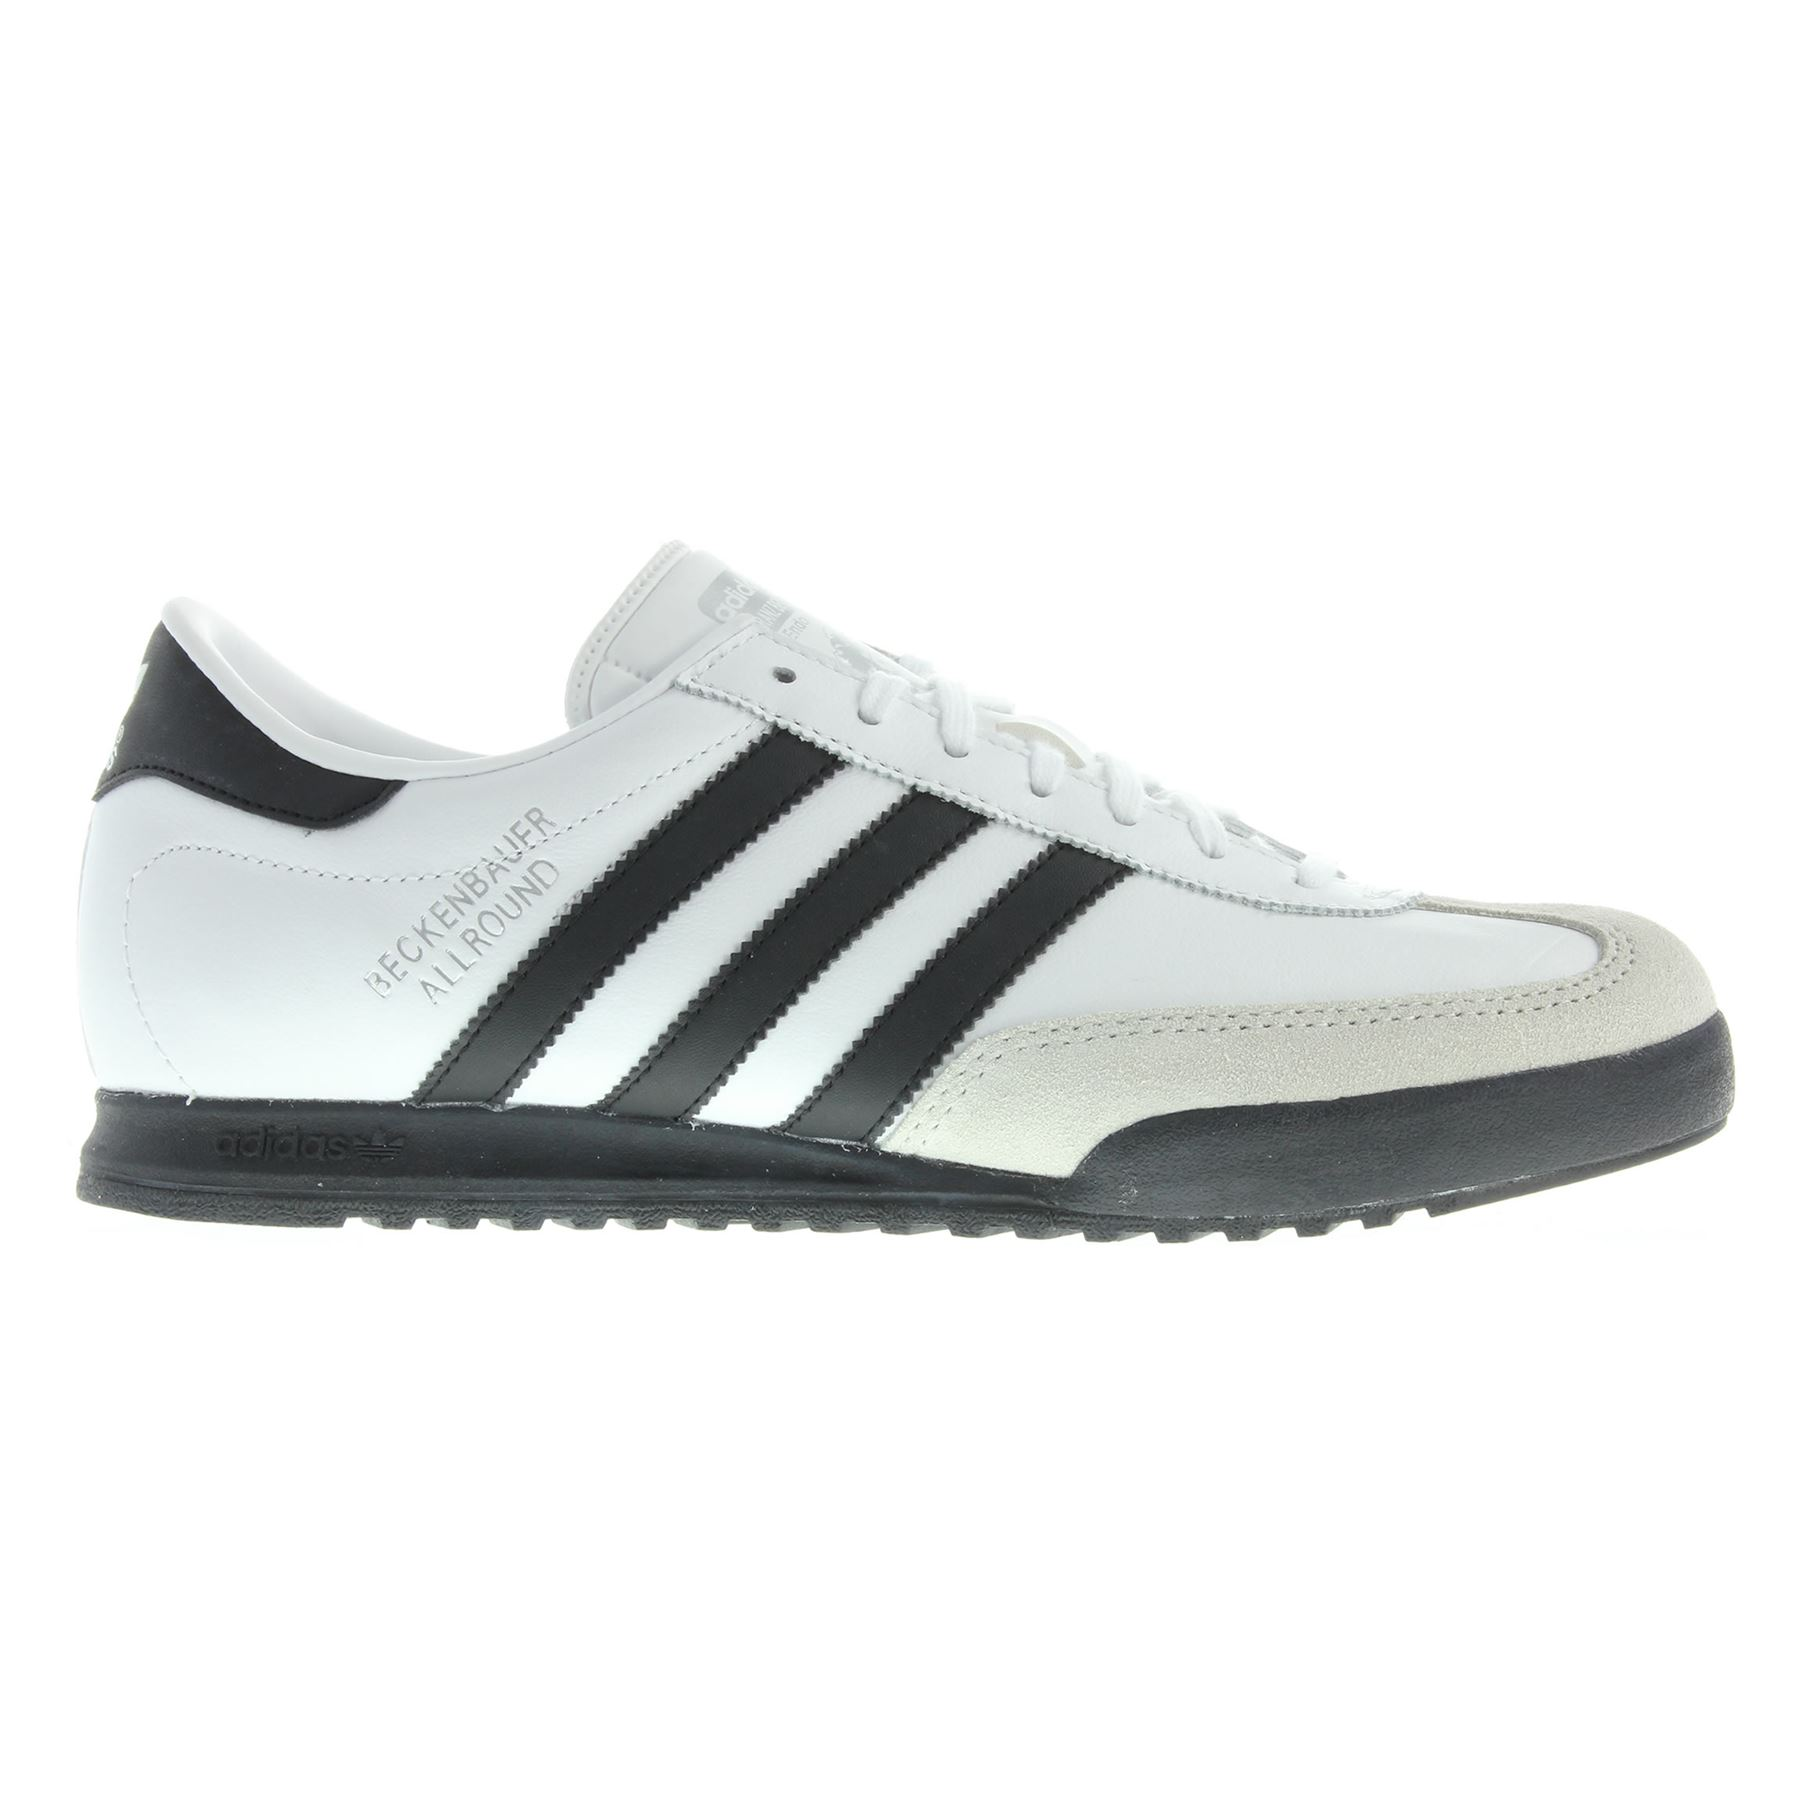 52d86baaf ADIDAS ORIGINALS MEN S TRAINERS BECKENBAUER ALL ROUND BLUE WHITE BLACK  BROWN